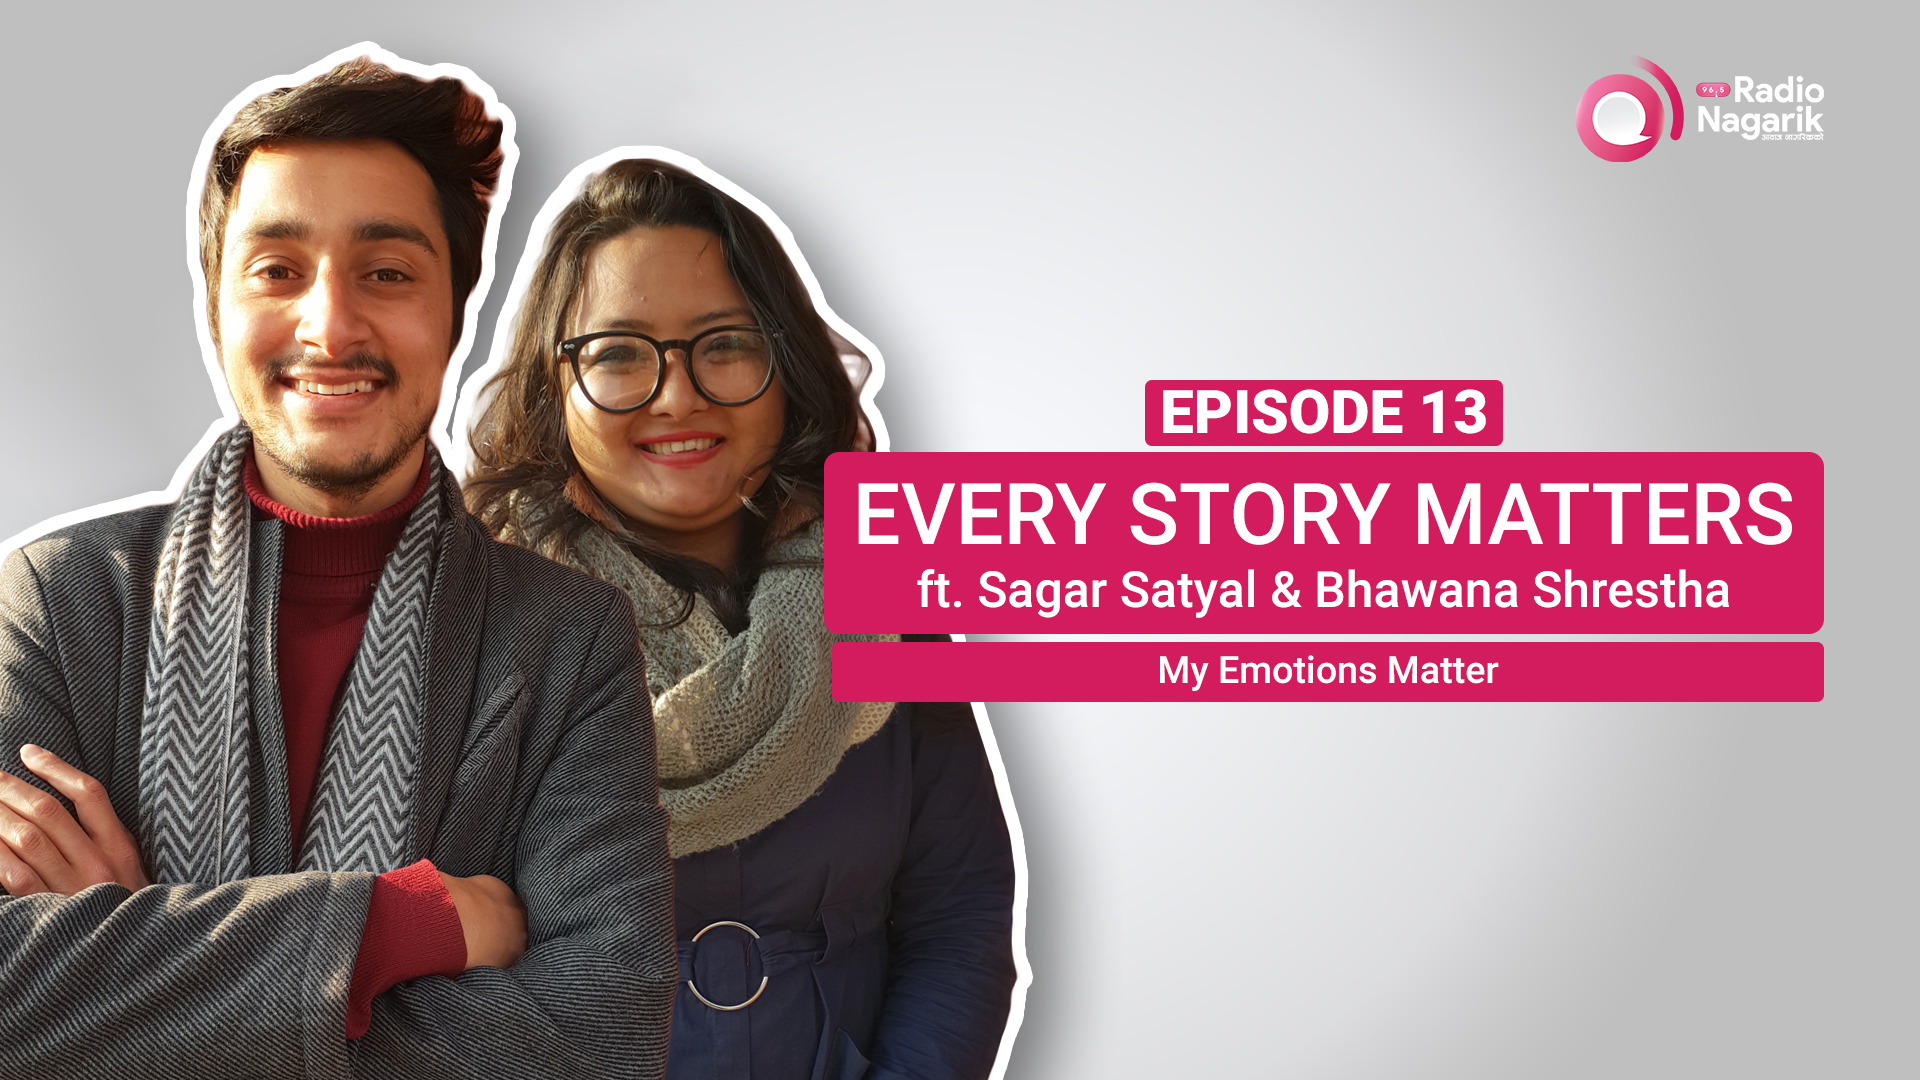 Sagar Satyal & Bhawana Shrestha talks about why Emotion Matters | Nepali Podcast